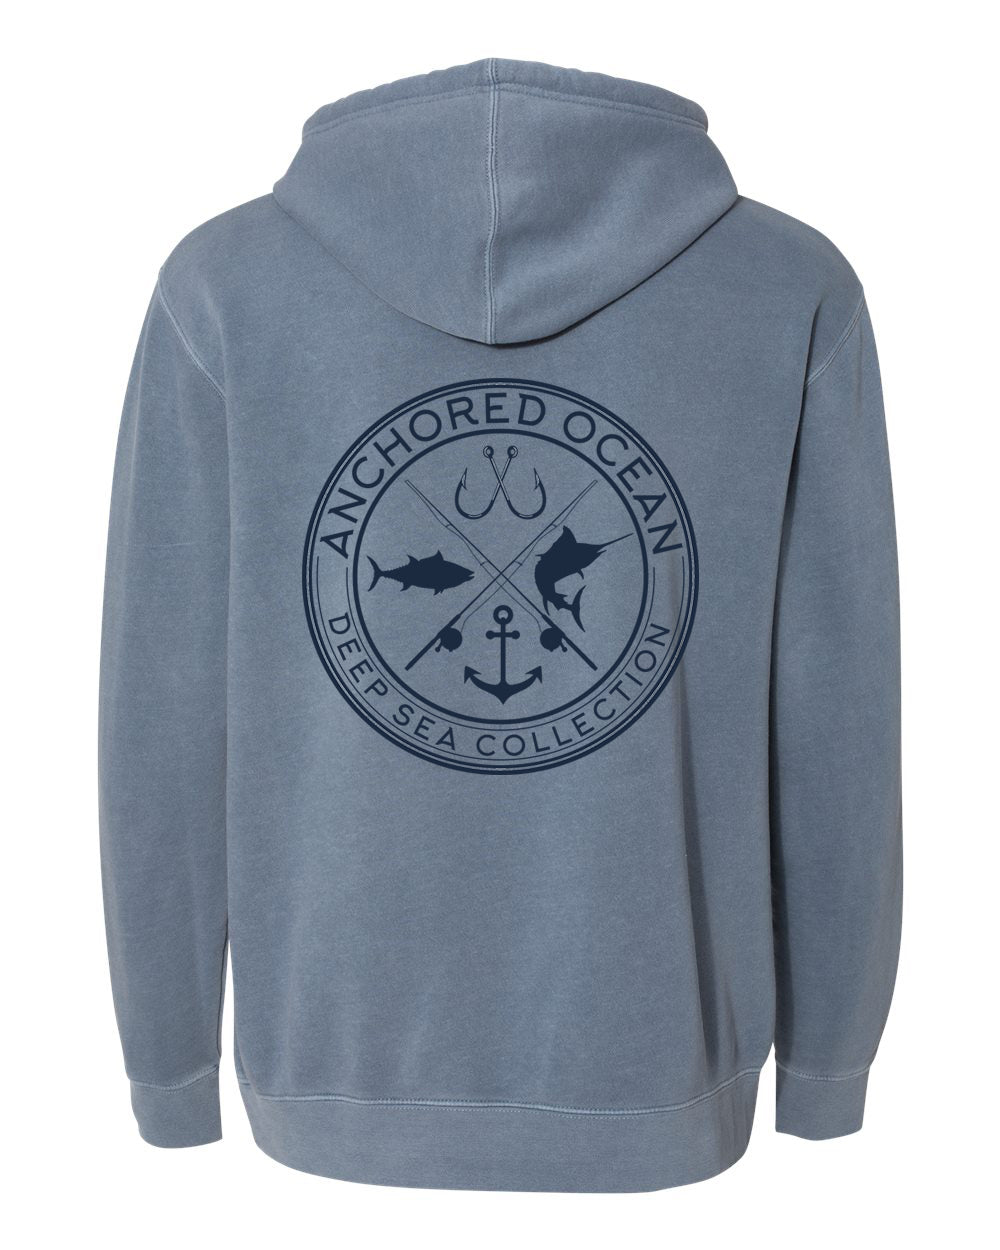 Deep Sea Hooded Fleece